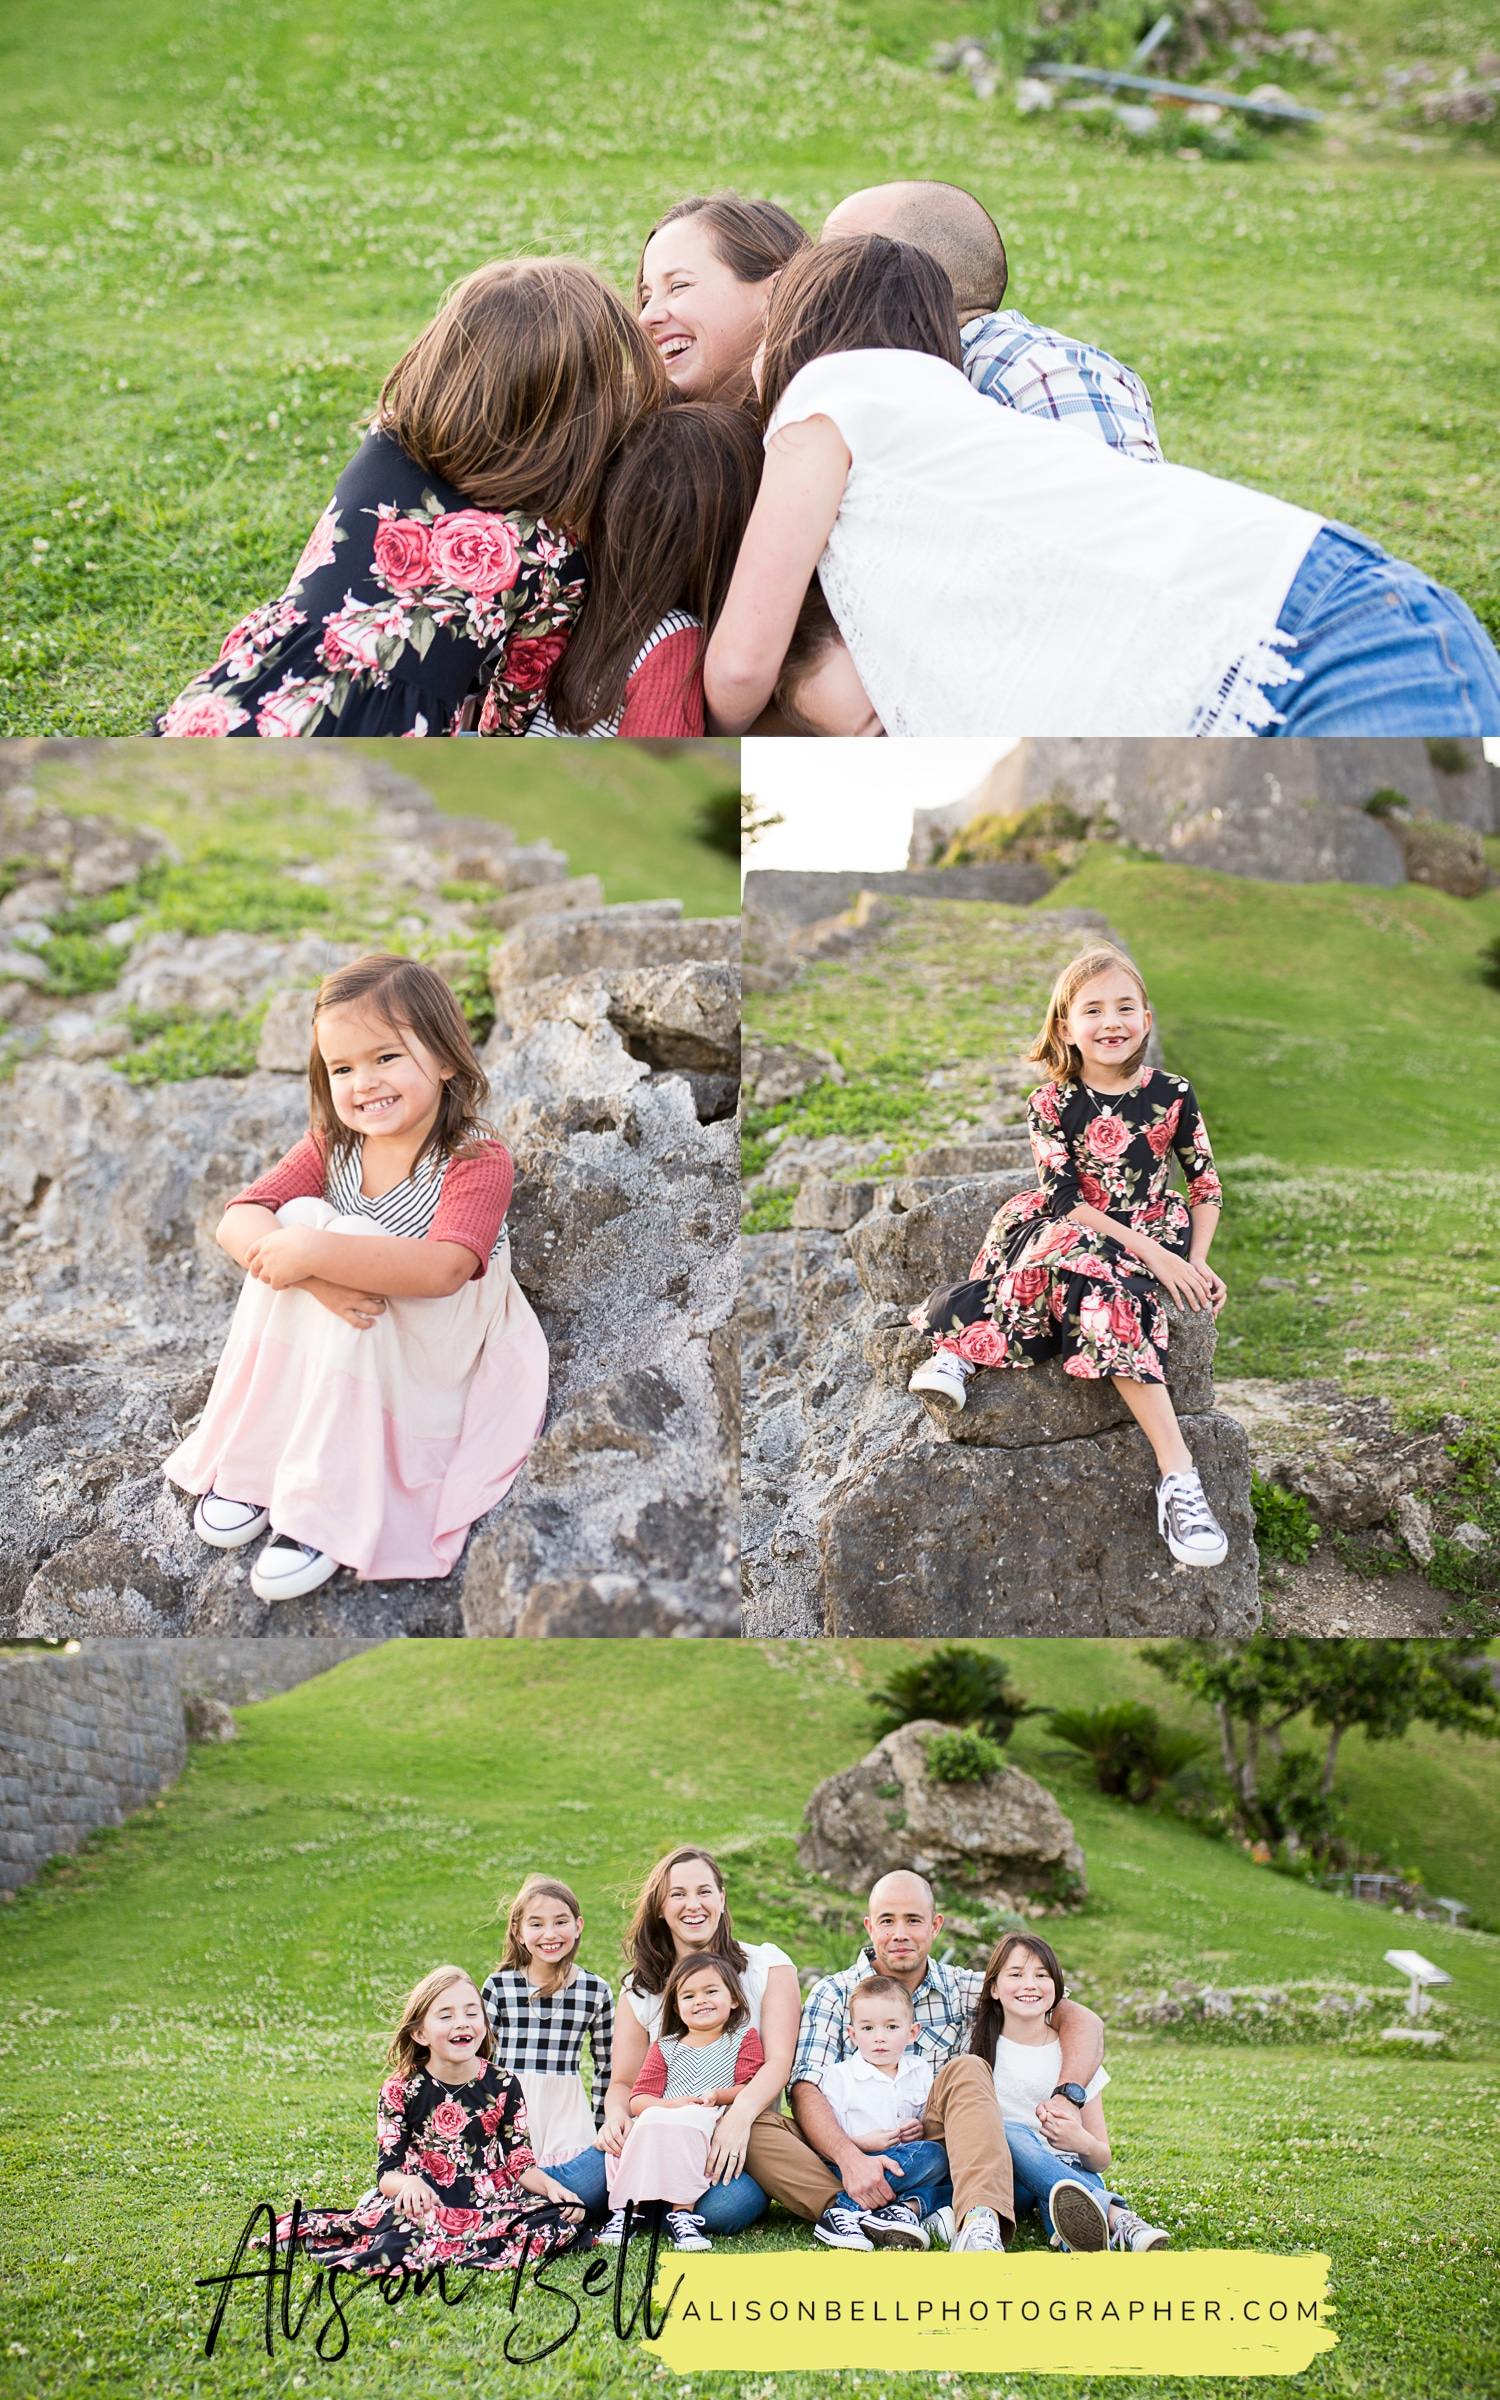 Large fun family photographer with seven kids at Katsuren Castle in Okinawa Japan by Alison Bell, Photographer